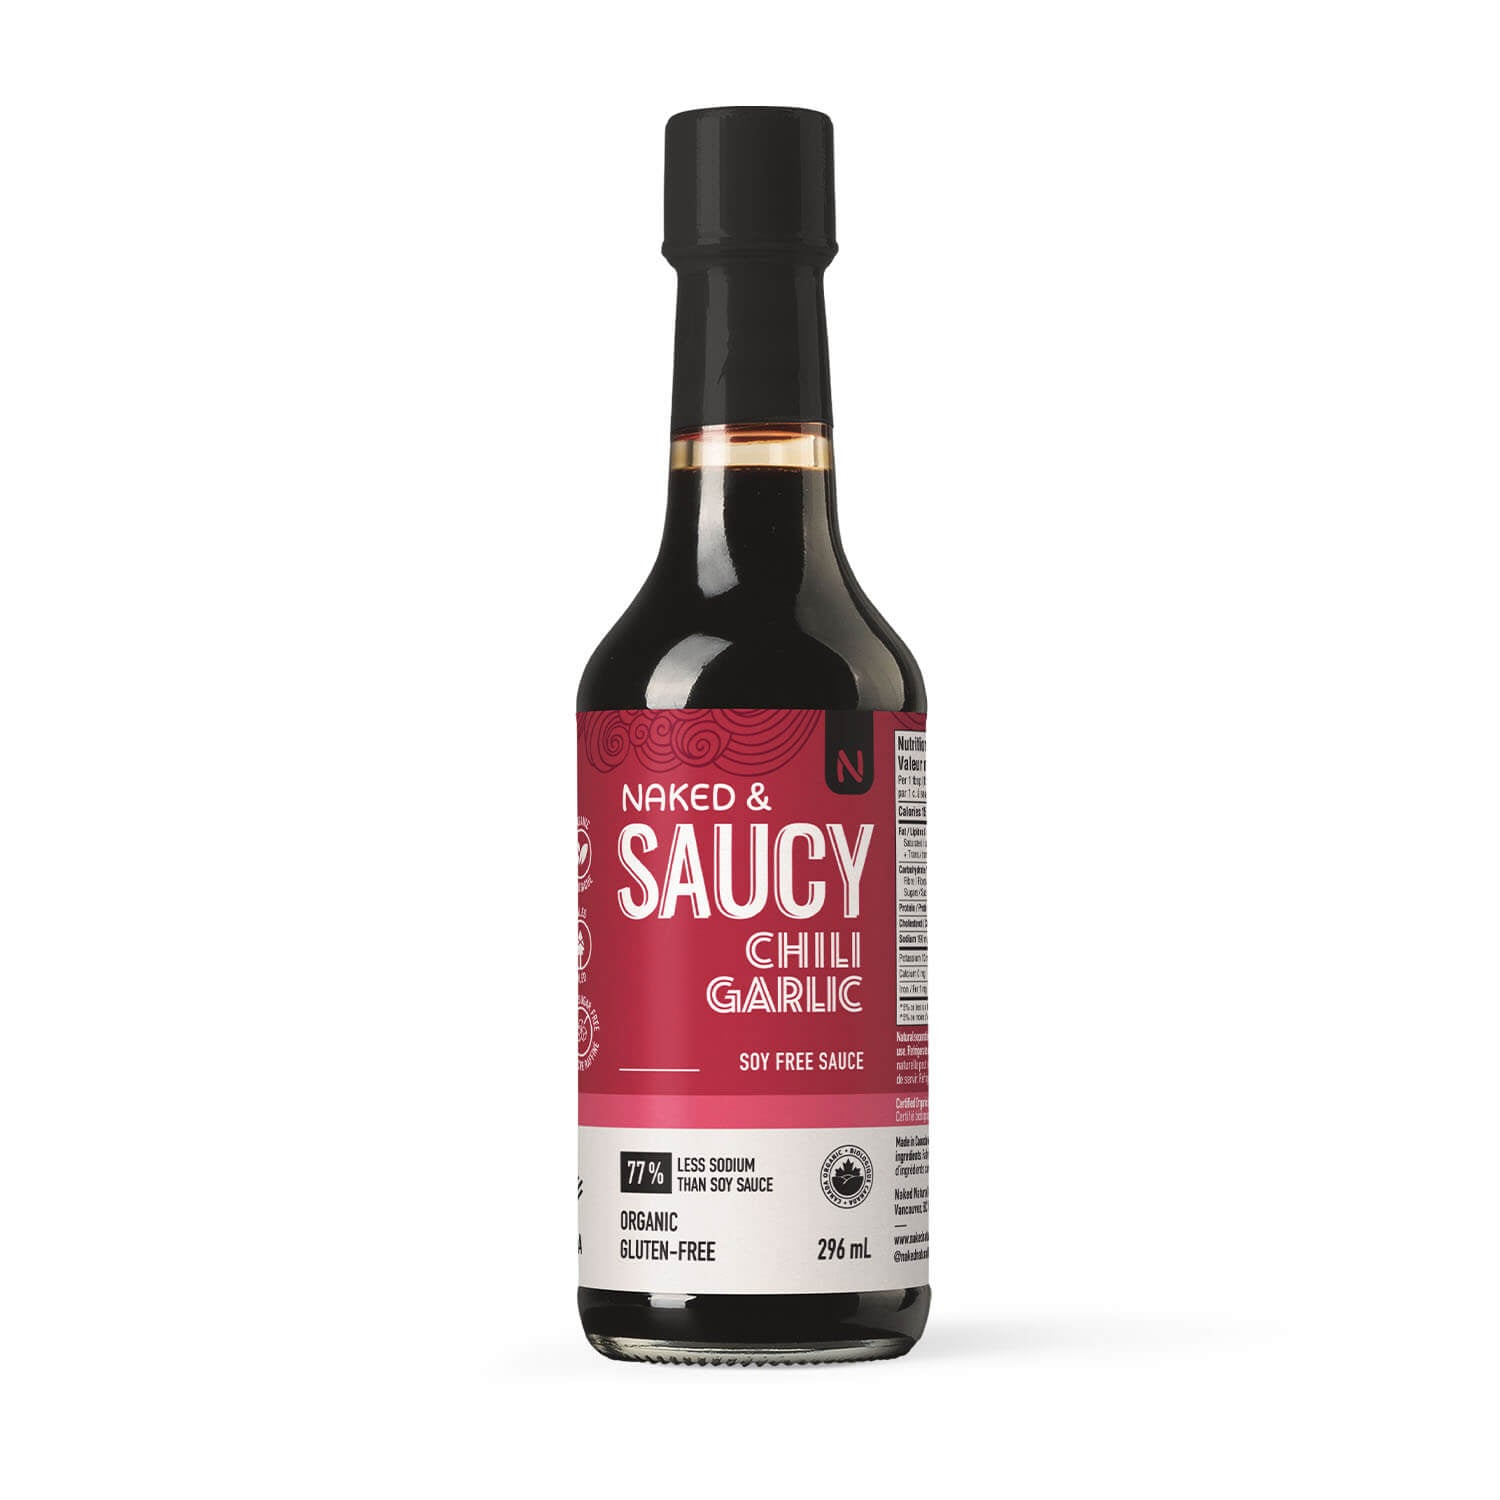 Naked and Saucy - Teriyaki Sauce, Chili Garlic, 296 ml